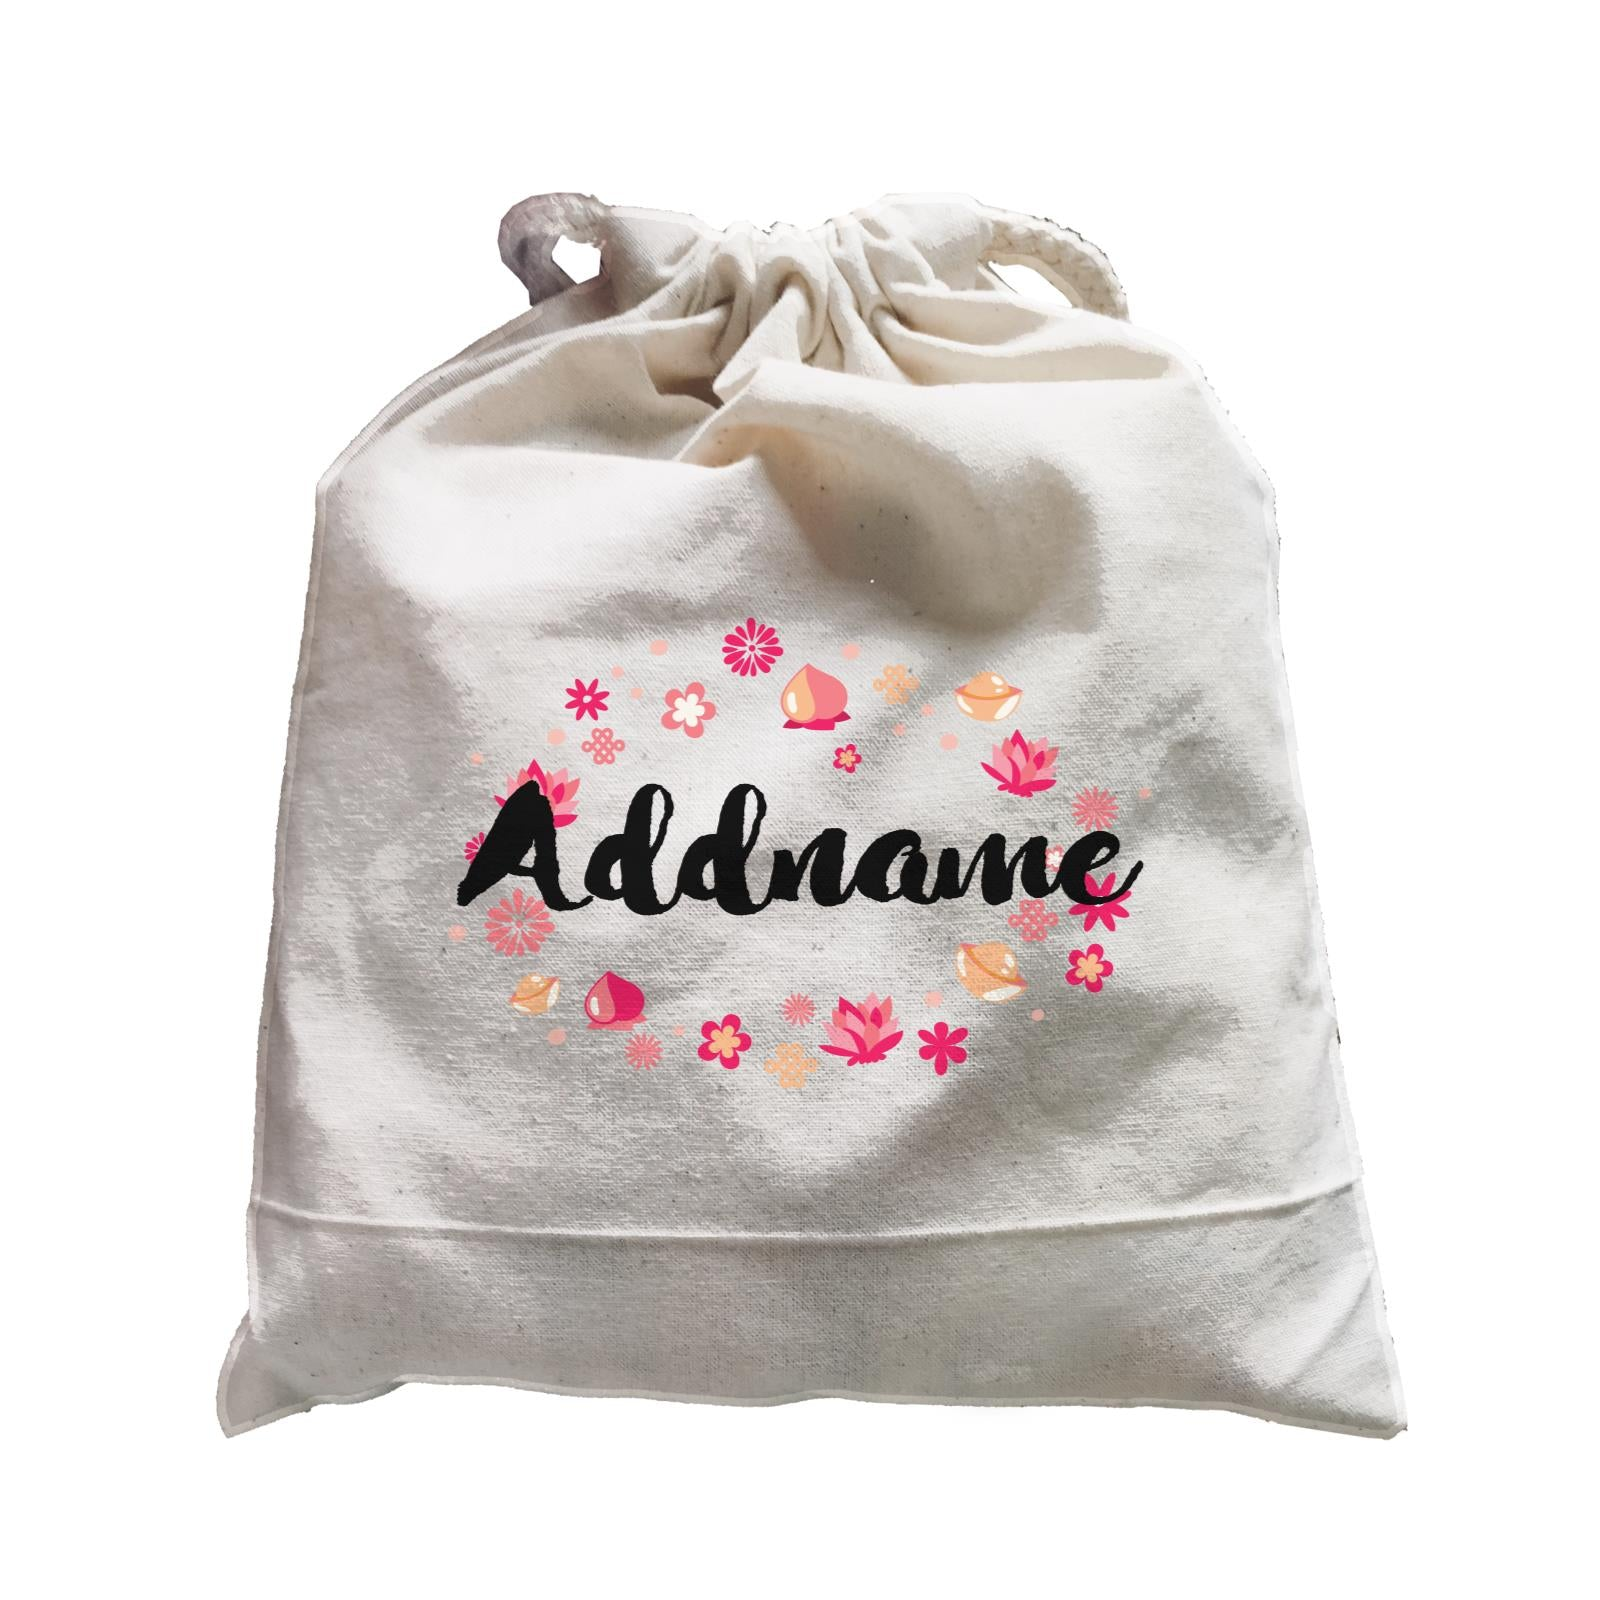 Chinese New Year Addname with Chinese New Year Elements Ang Pao Bag Satchel  Personalizable Designs